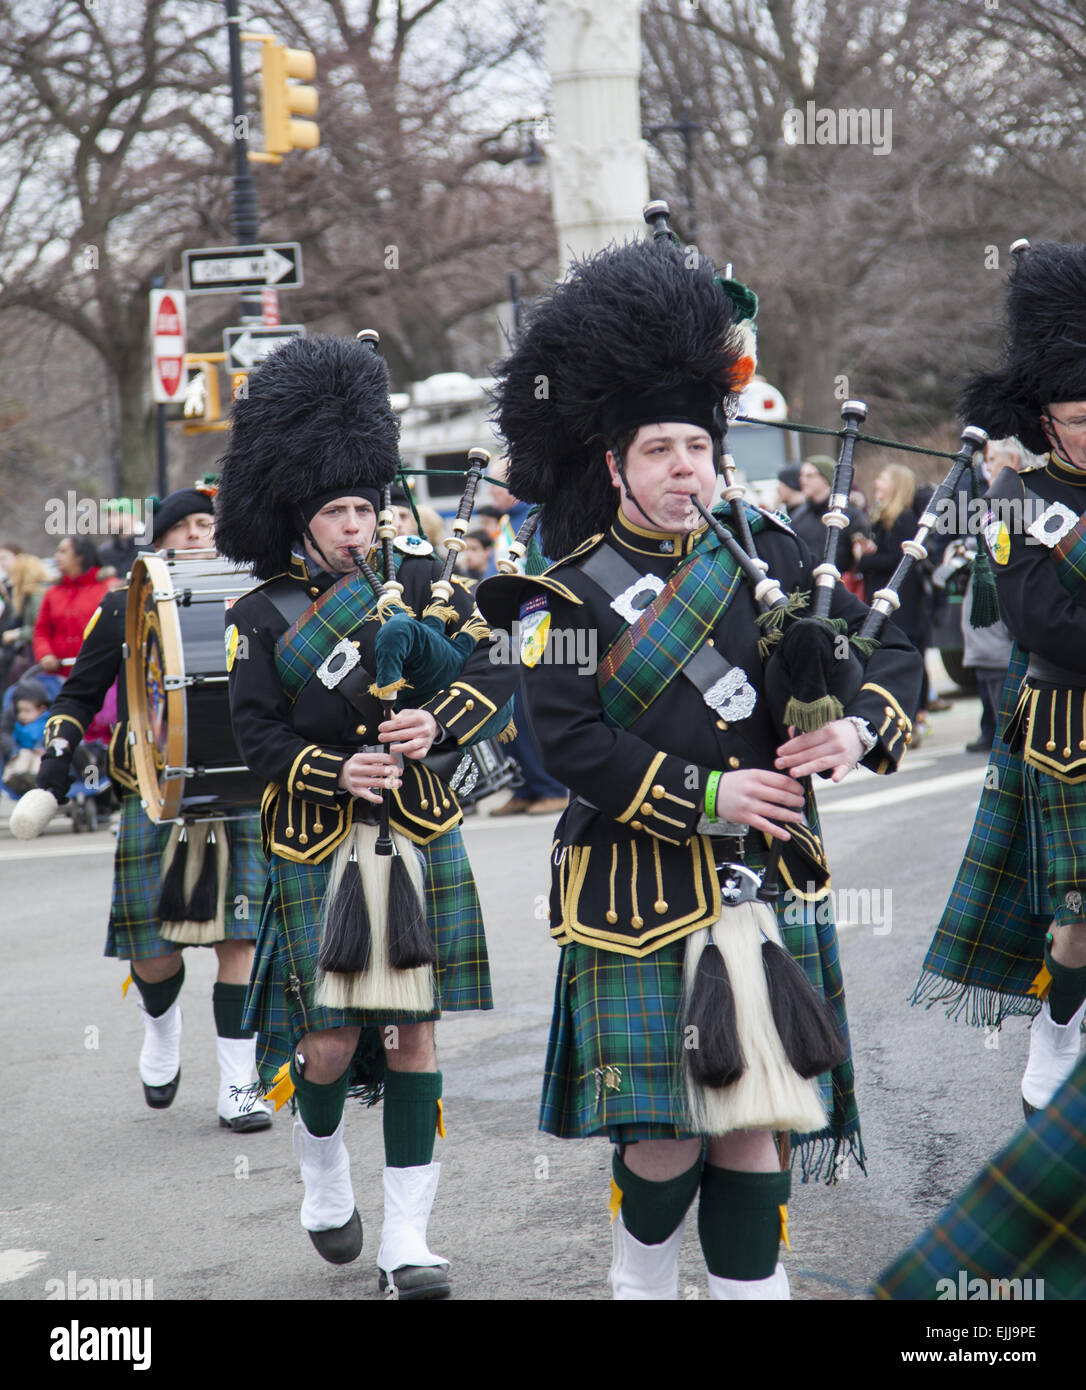 Bagpipers in full regalia march in the  St. Patrick's Day Parade in Park Slope, Brooklyn, New York - Stock Image